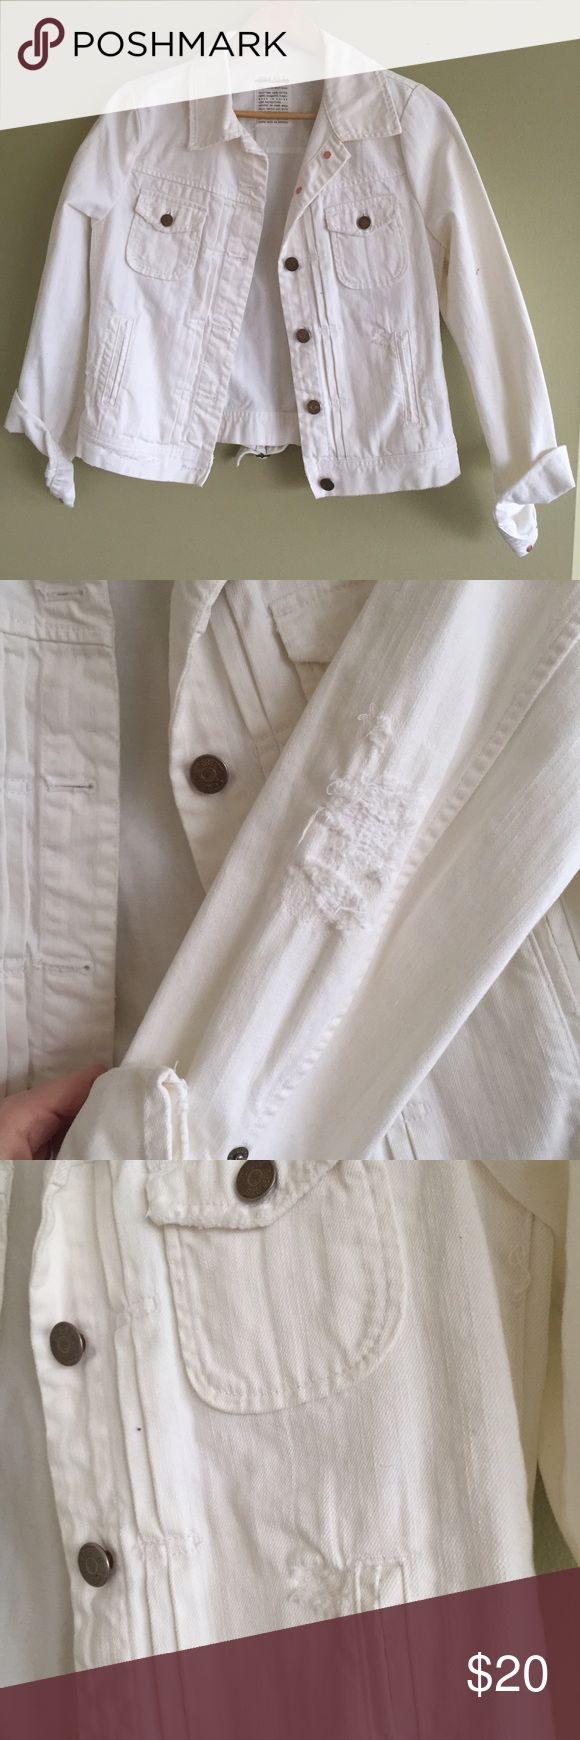 J Crew White denim Jean jacket NWOT distressed white Jean jacket from jcrew outlet, that's why the tag size is marked. Comfy and cute for spring ! J.Crew Factory Jackets & Coats Jean Jackets